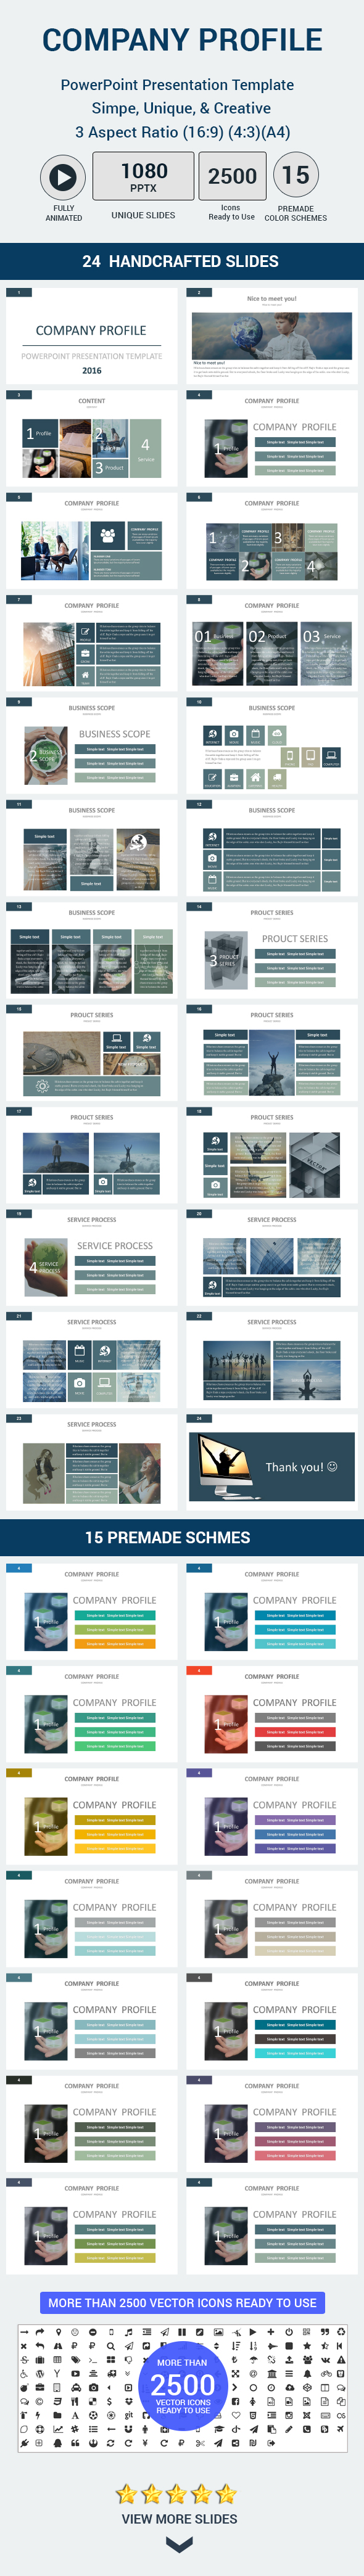 Company profile powerpoint presentation template by gardeniadesign company profile powerpoint presentation template business powerpoint templates fbccfo Images